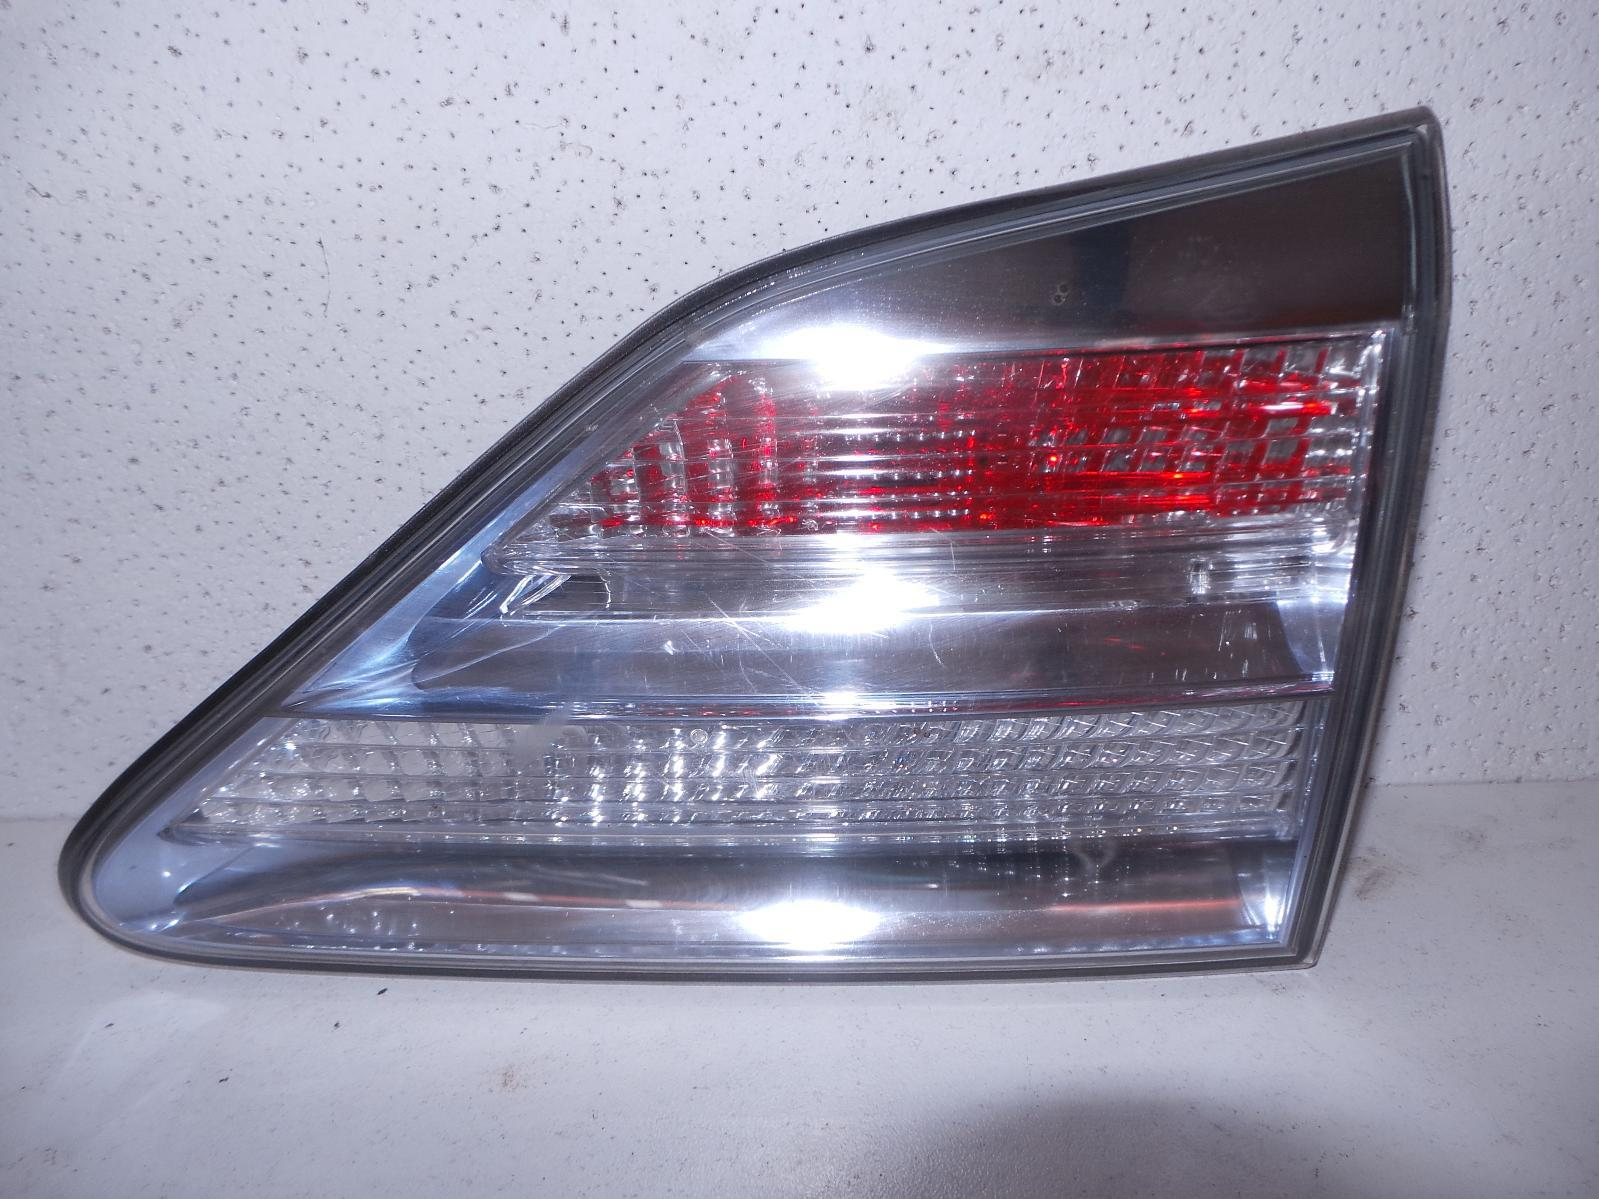 LEXUS RX350, Rear Garnish, TAILGATE LAMP (RH SIDE), GGL1#, RX450H, 03/09-05/12